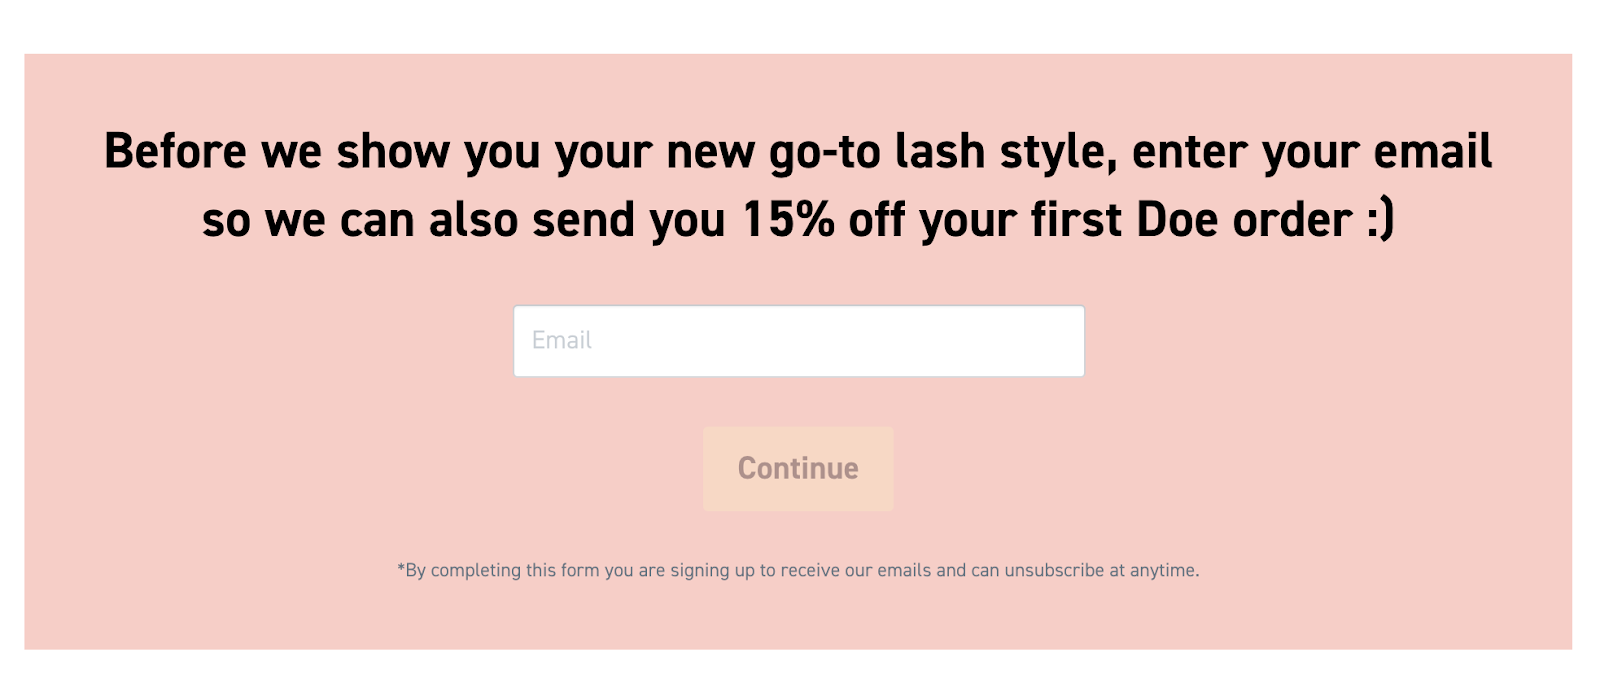 an example of doe dashes' pink and white email capture form on its website